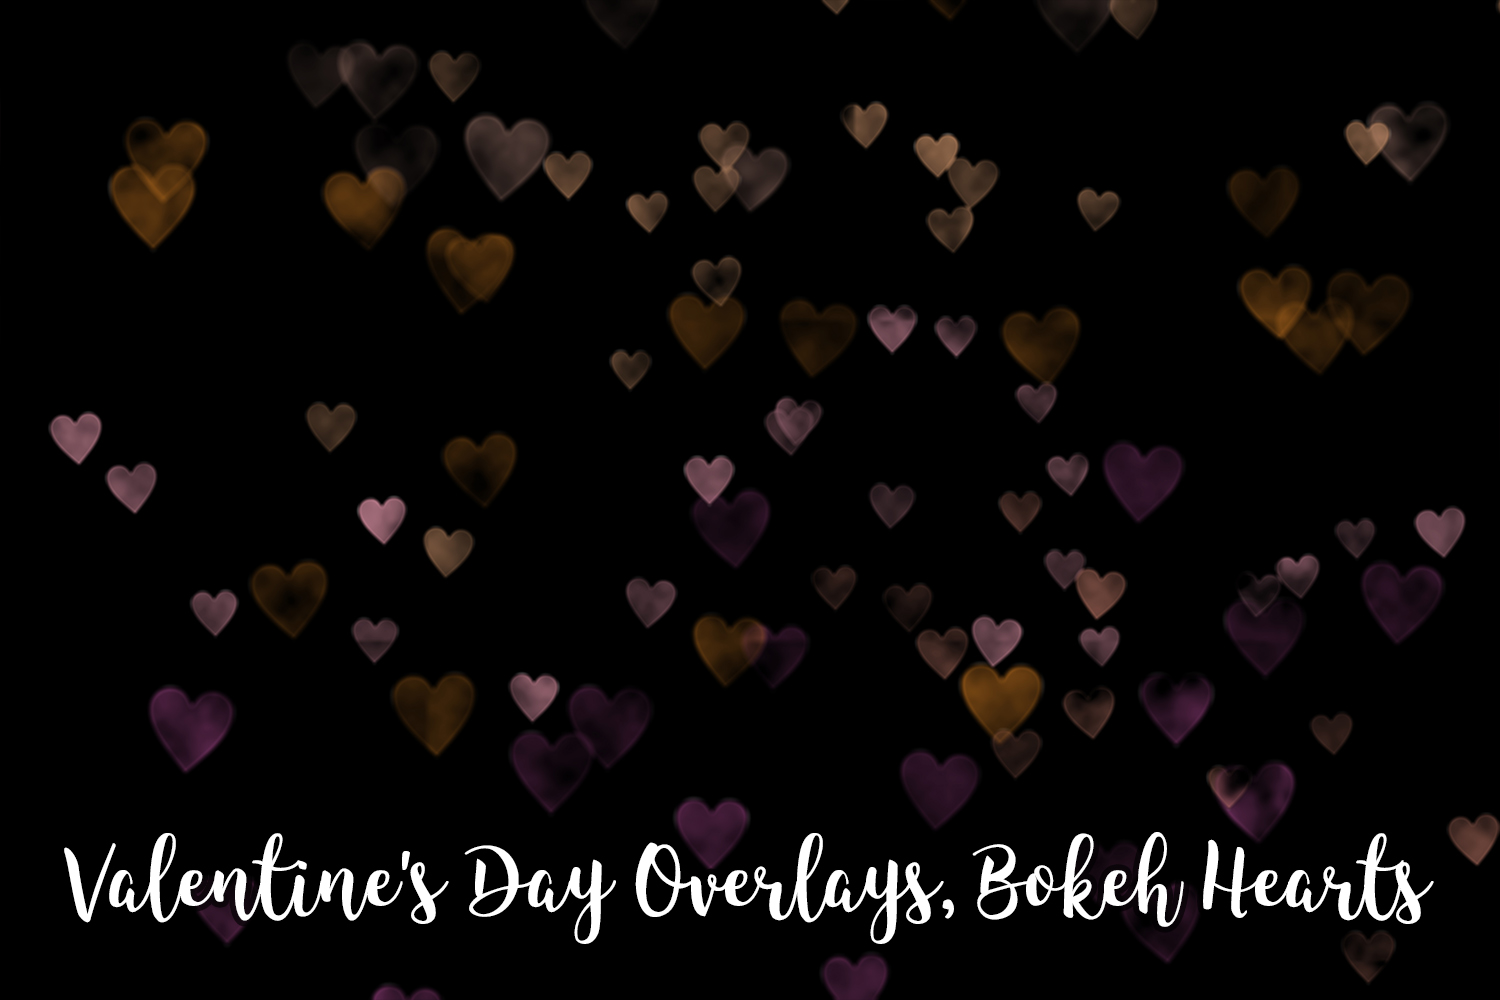 Valentine's Day Overlays, Bokeh Hearts Overlays example image 3